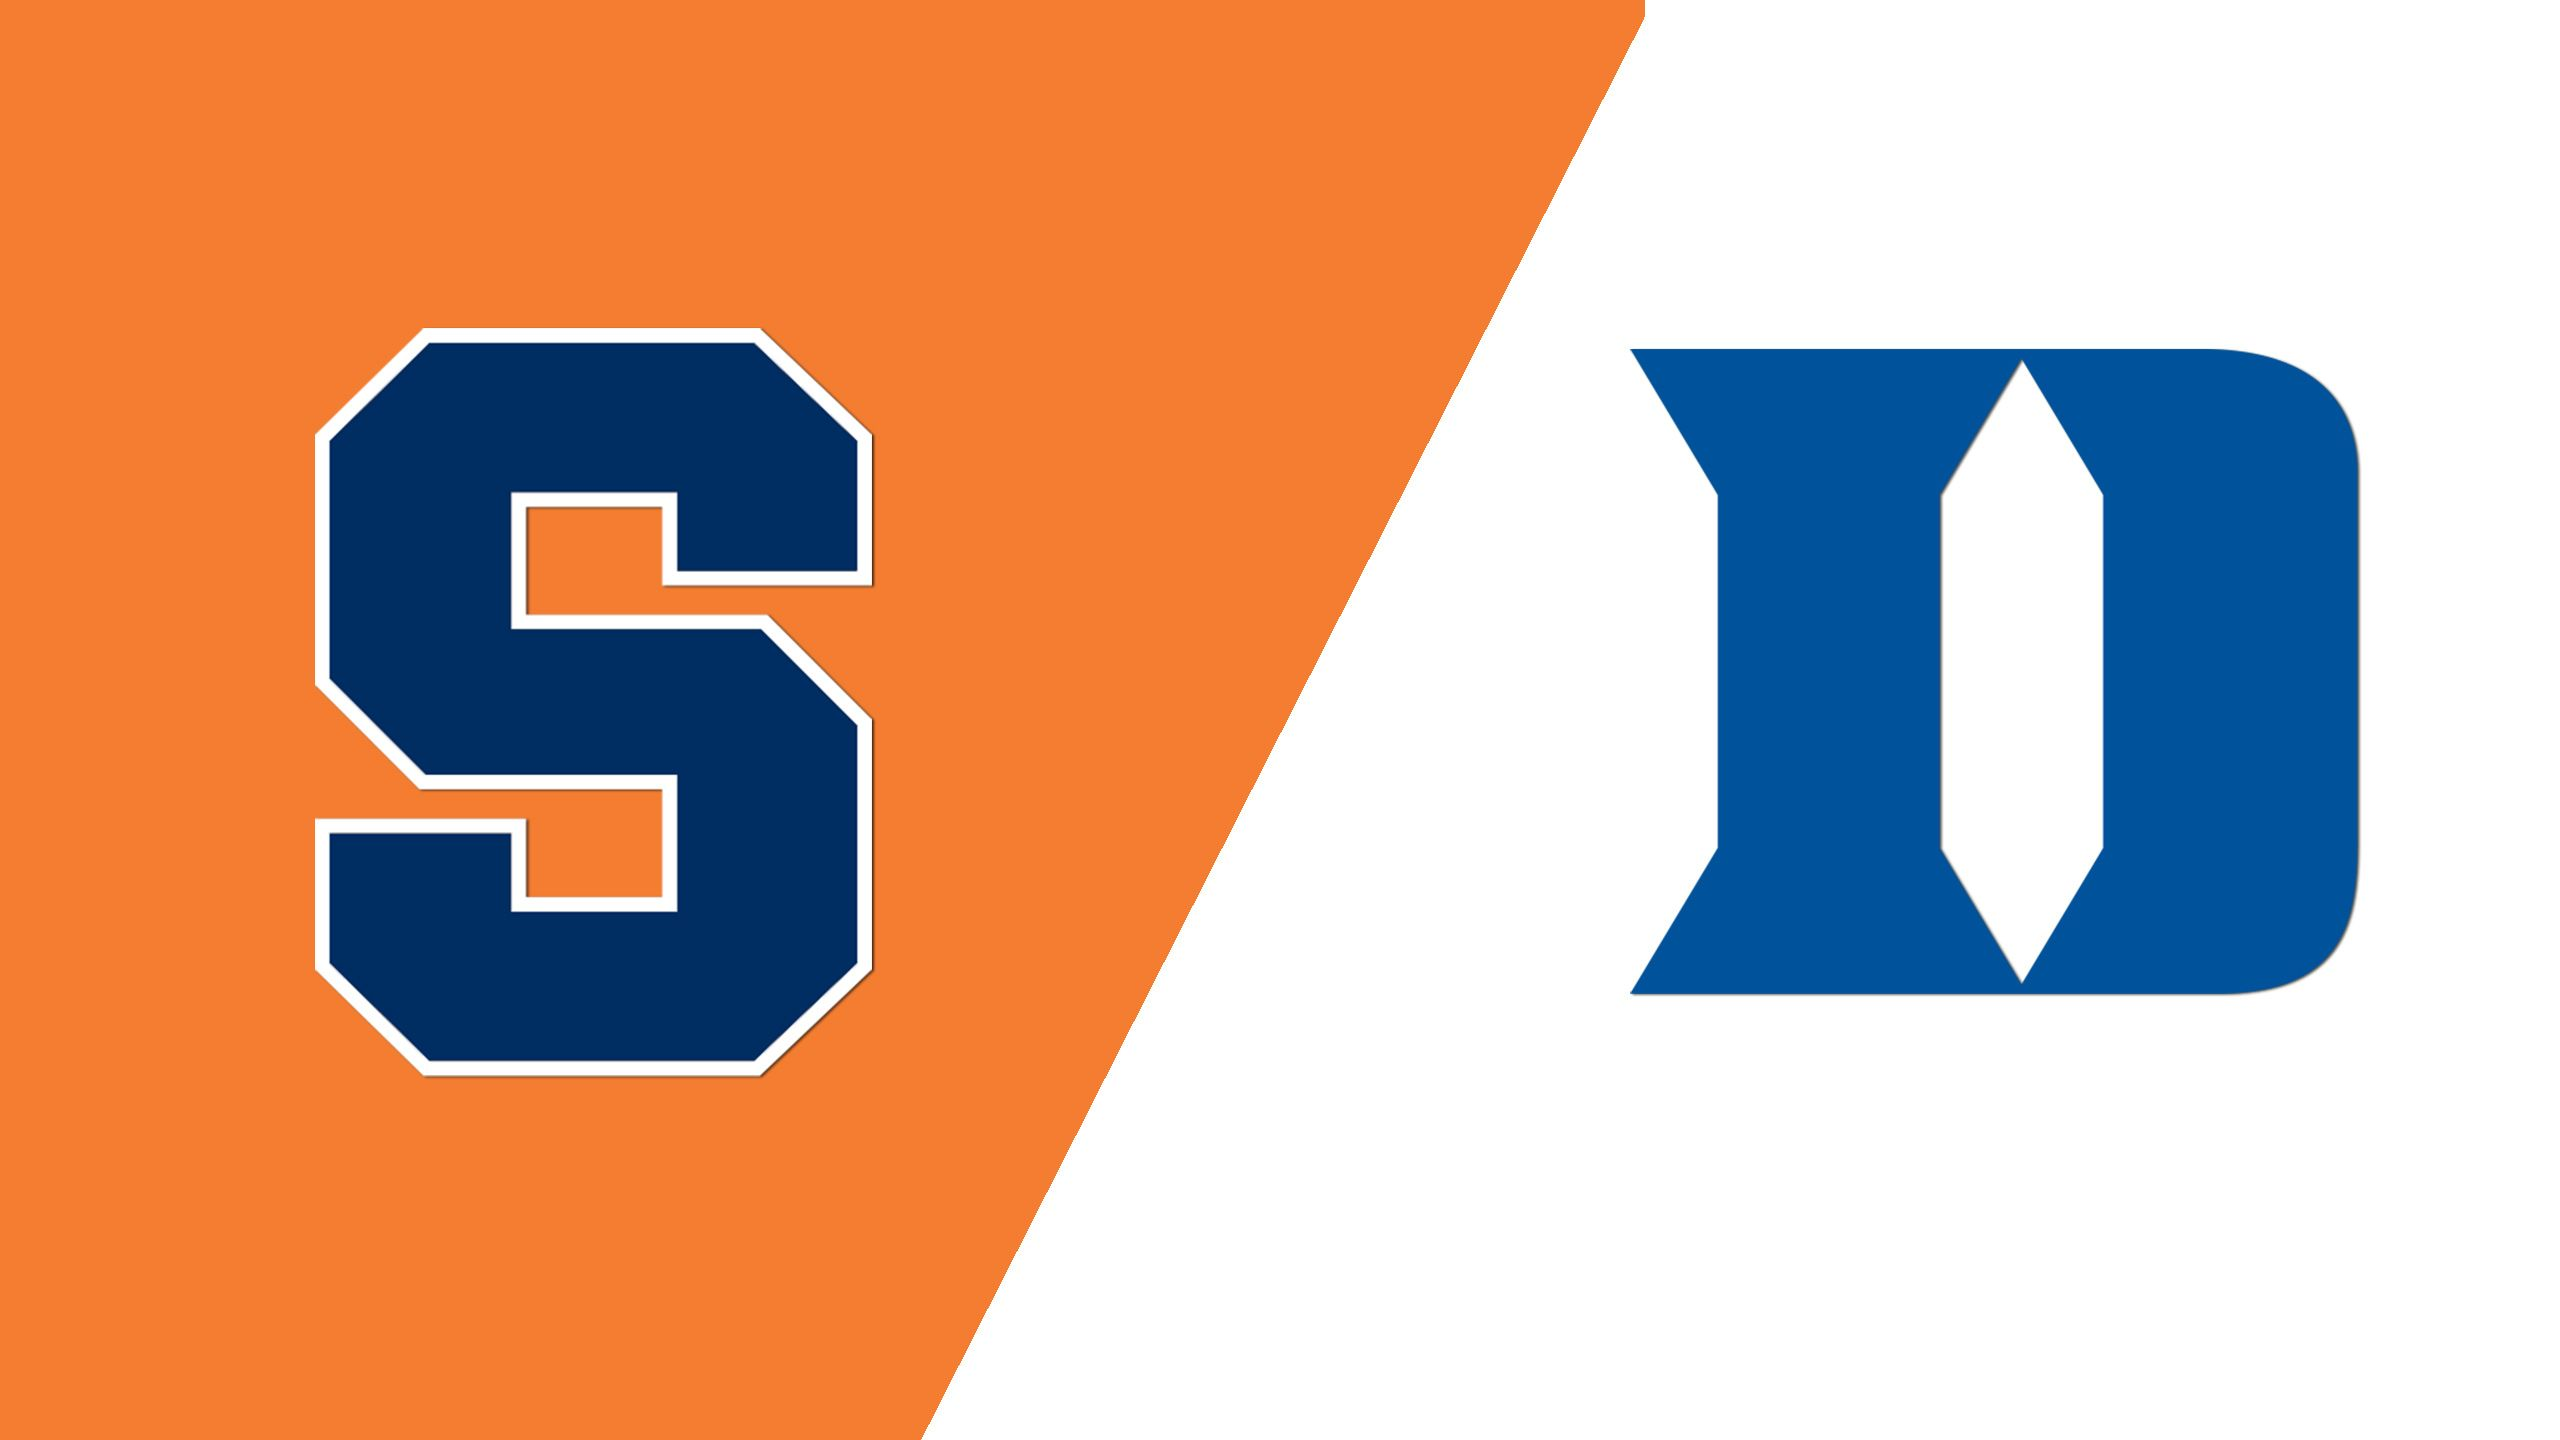 #15 Syracuse vs. #3 Duke (M Lacrosse)